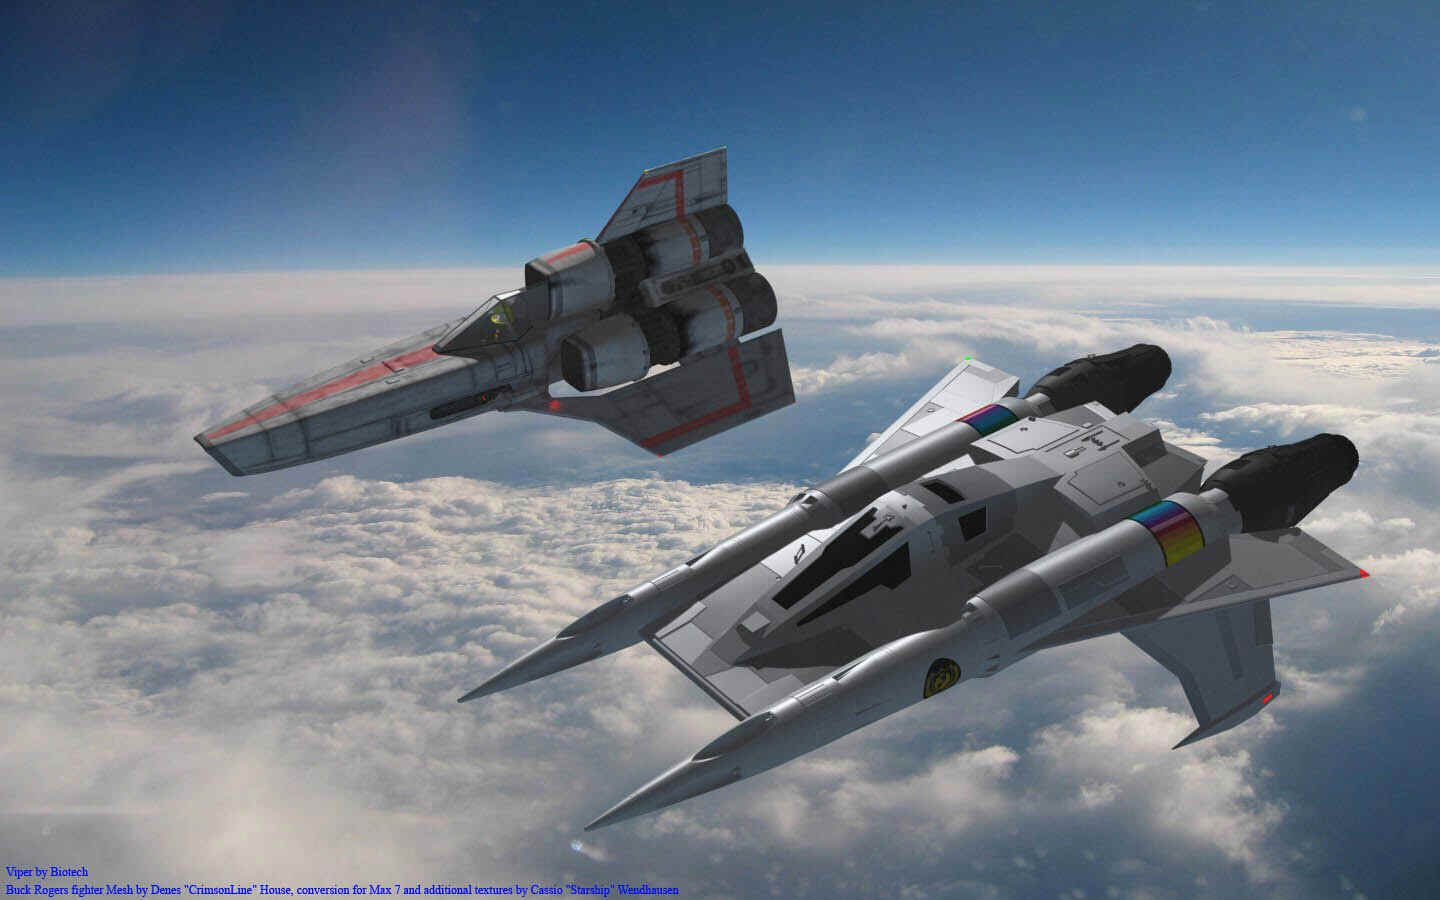 Earth Directorate Starfighter from Buck Rogers! What if THIS